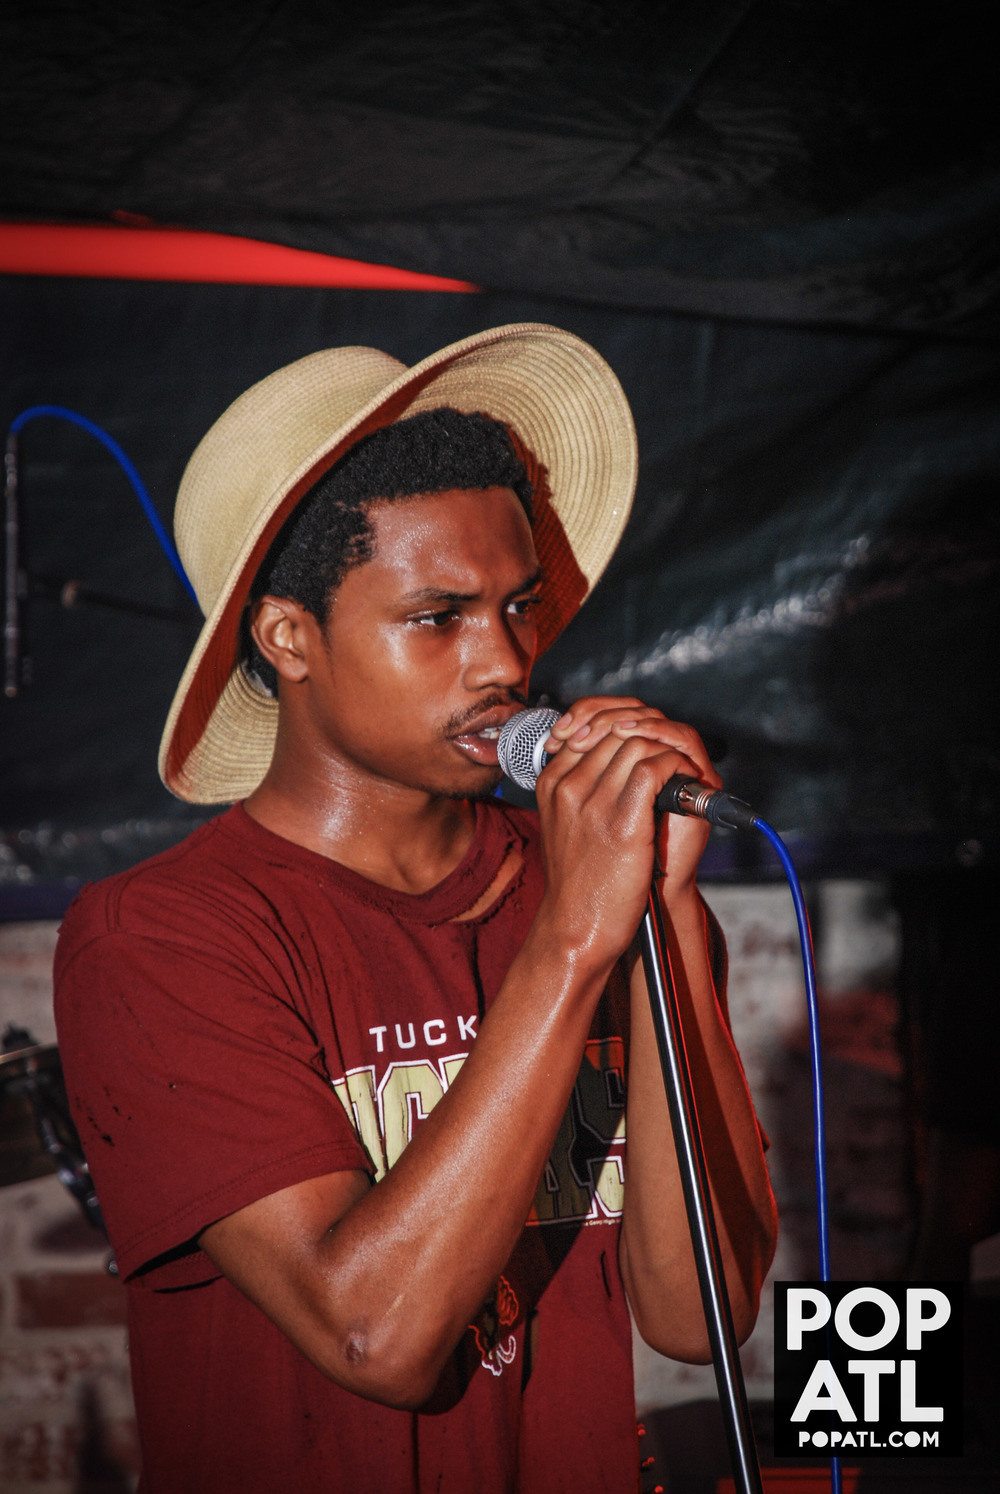 RAURY-RAURFEST-AT-POP-ATL-147.jpg